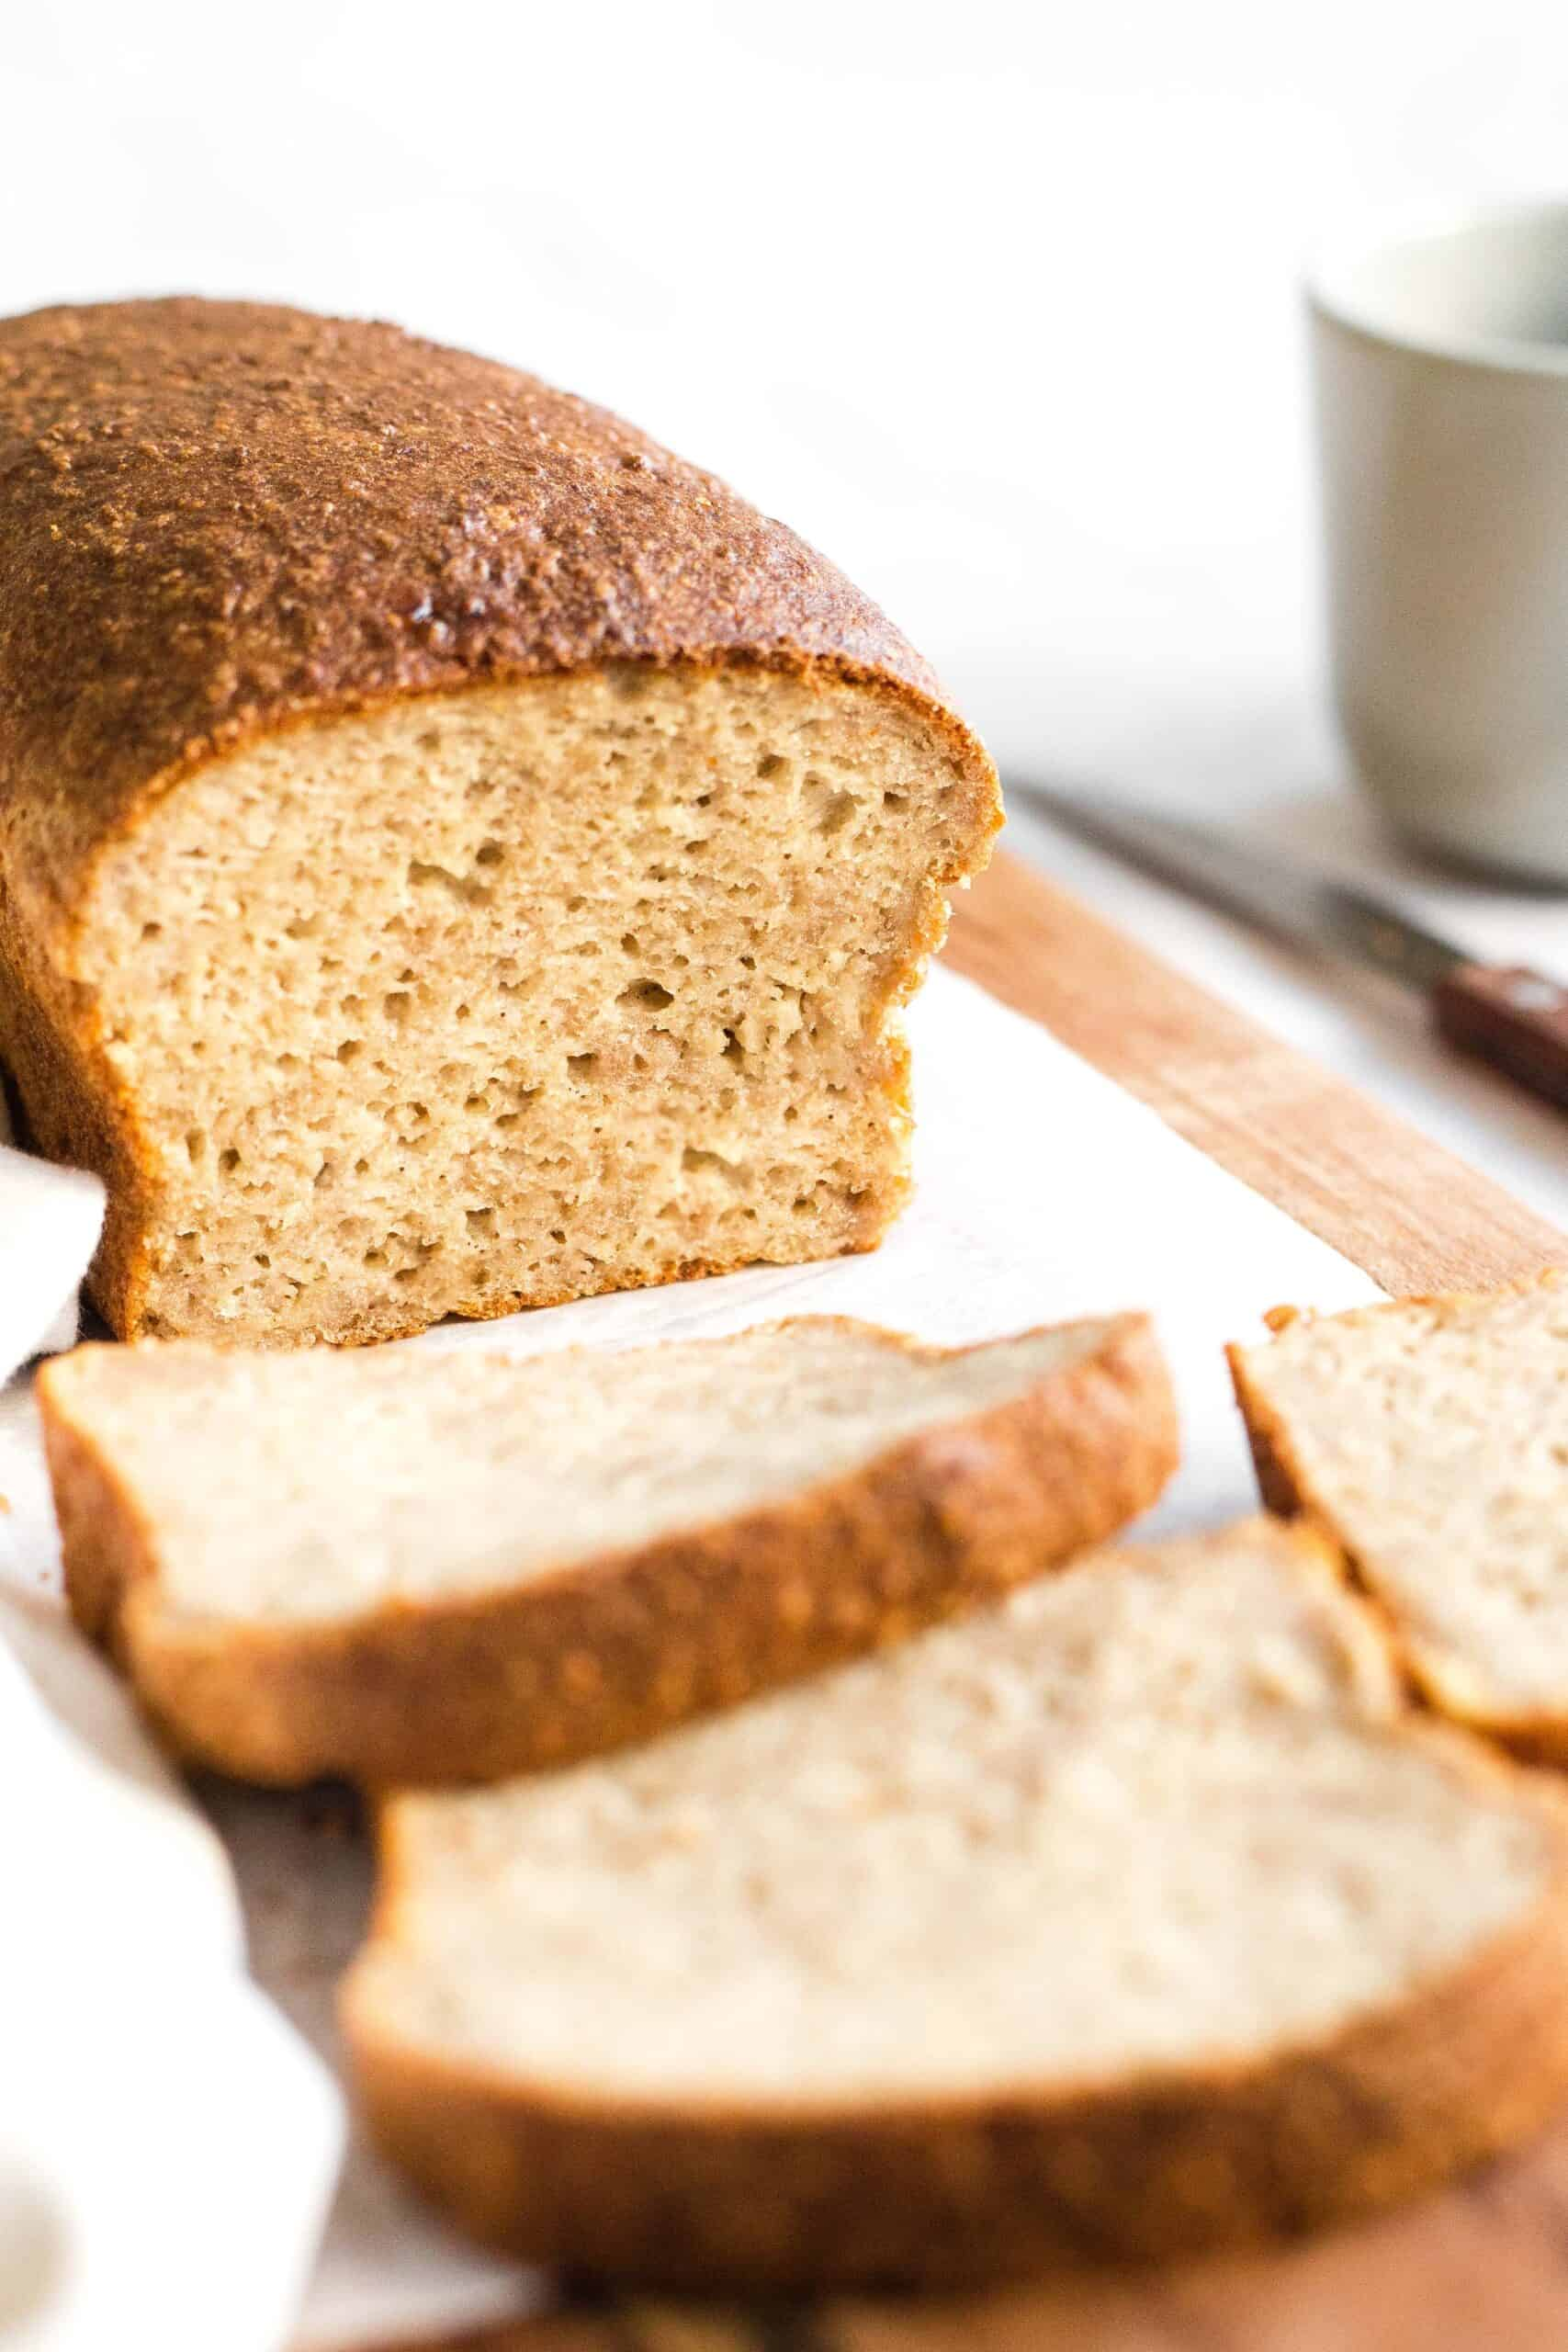 A half-sliced loaf of yeast quinoa bread.